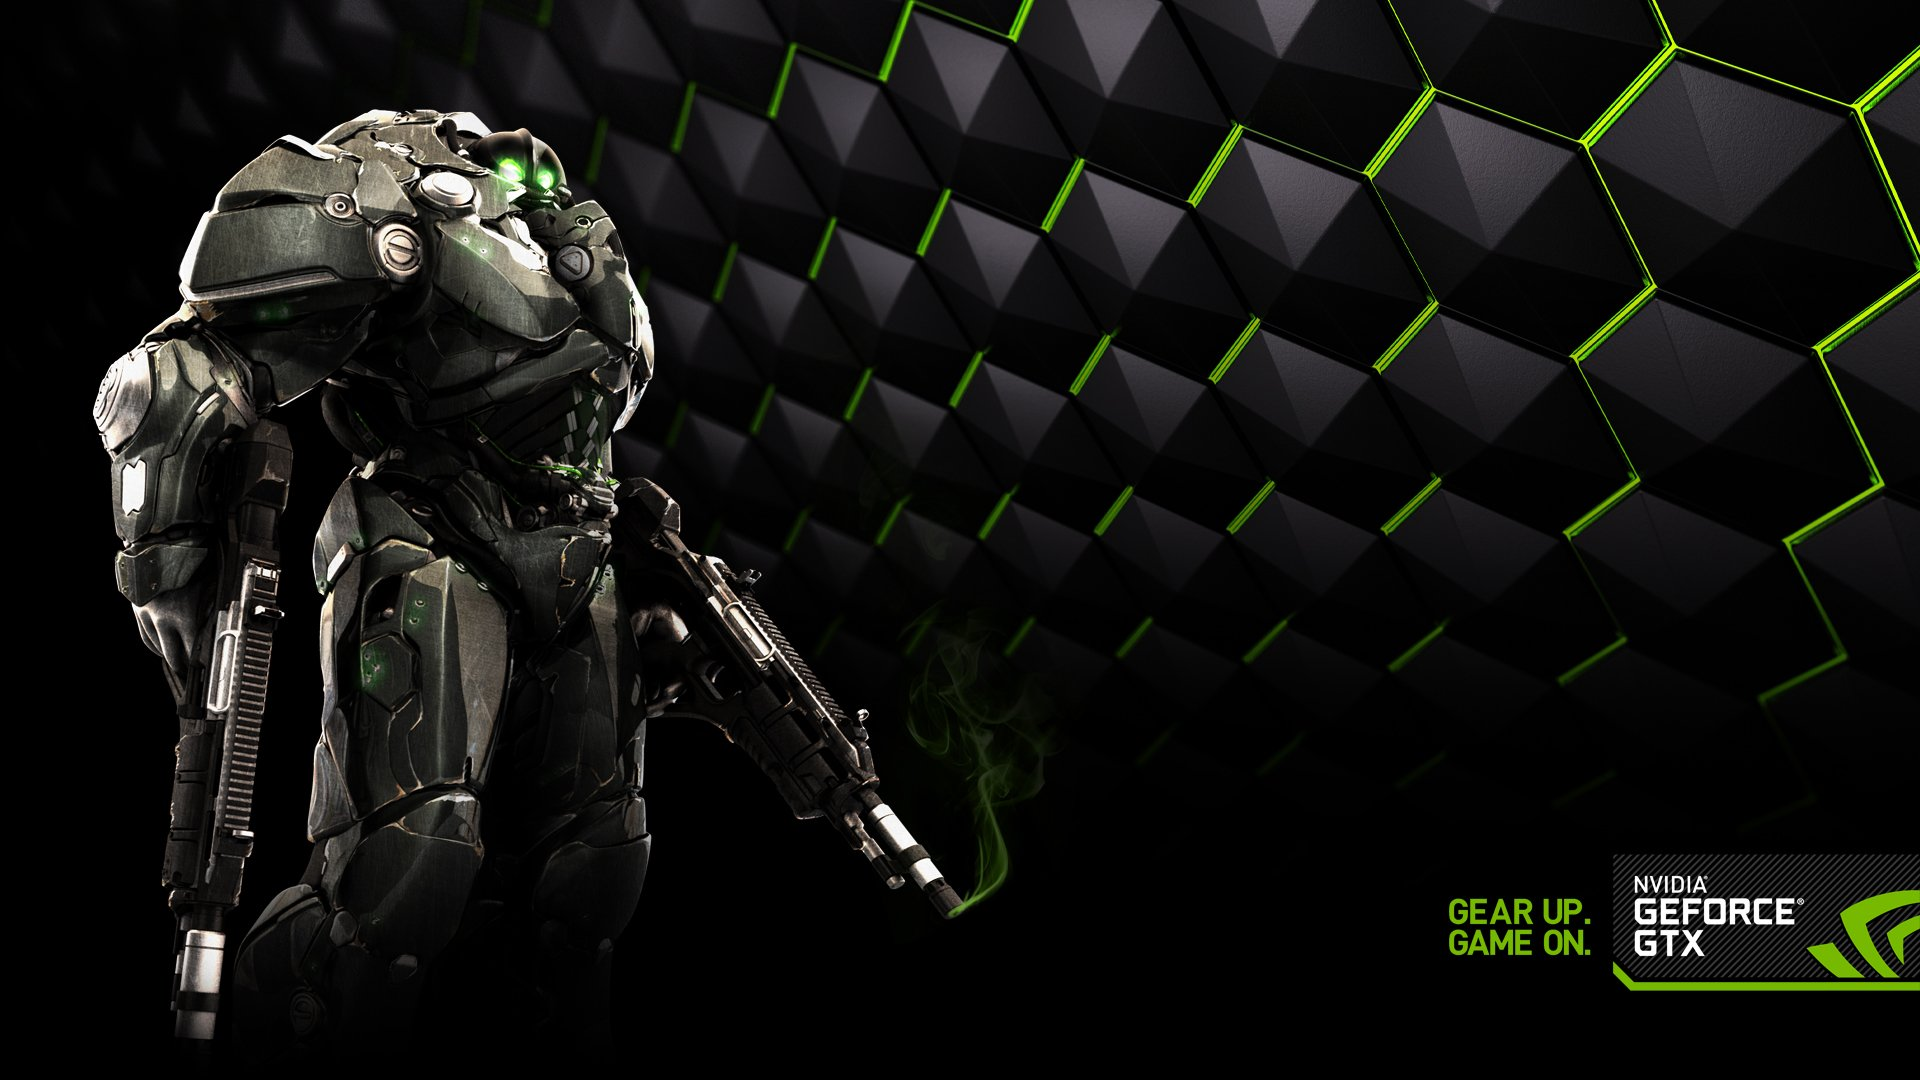 NVIDIA Wallpaper 1920x1080 HD 1920x1080